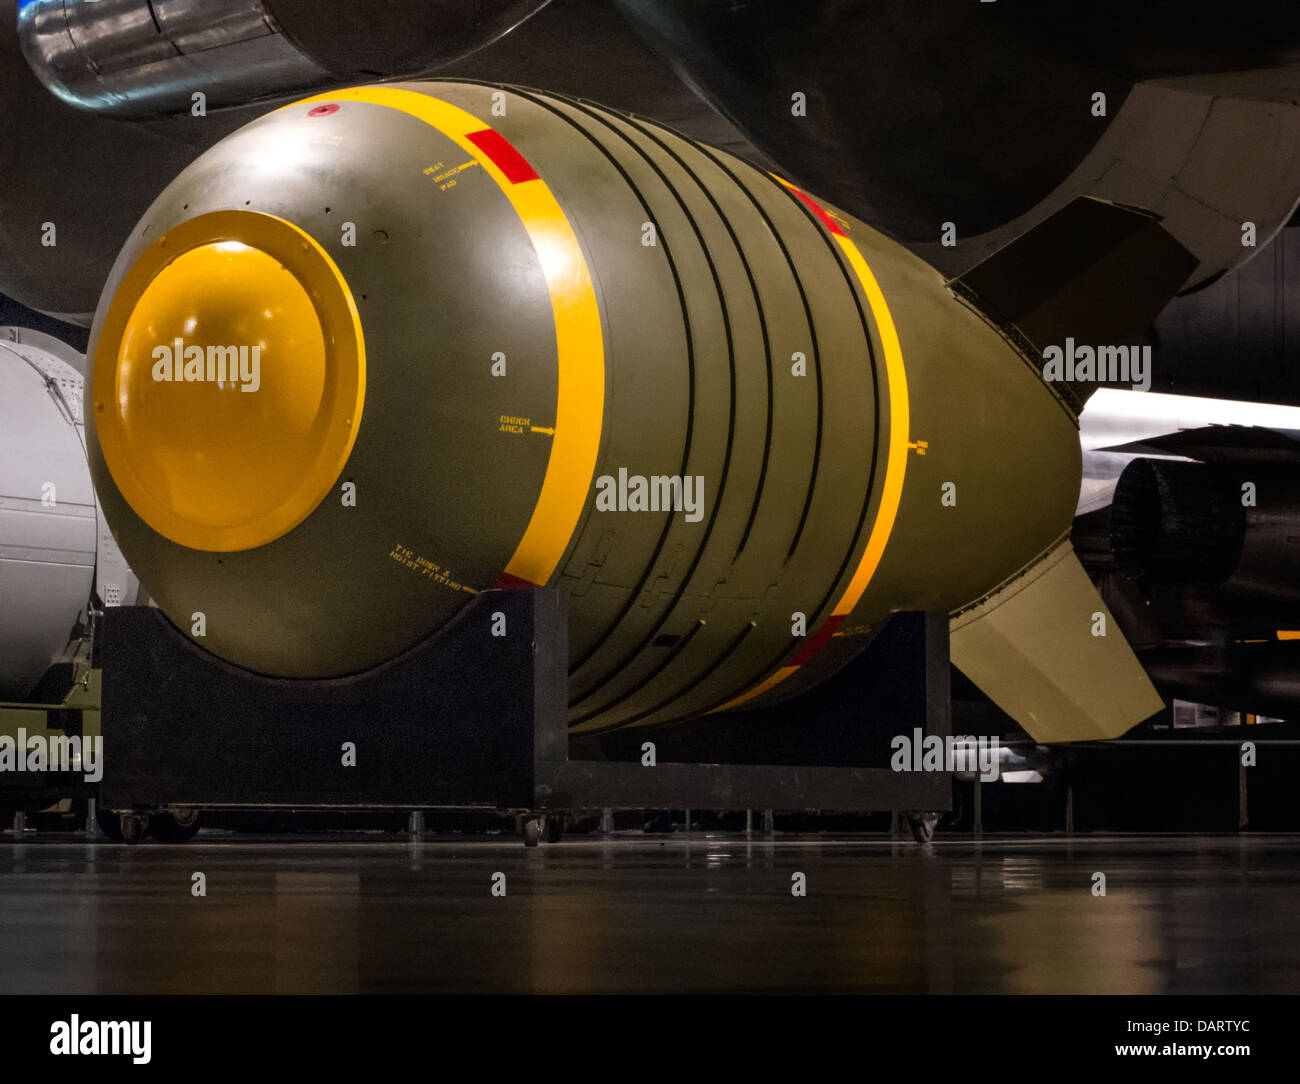 A type 6 atomic bomb on display at the United States Air force Museum in Dayton Ohio - Stock Image